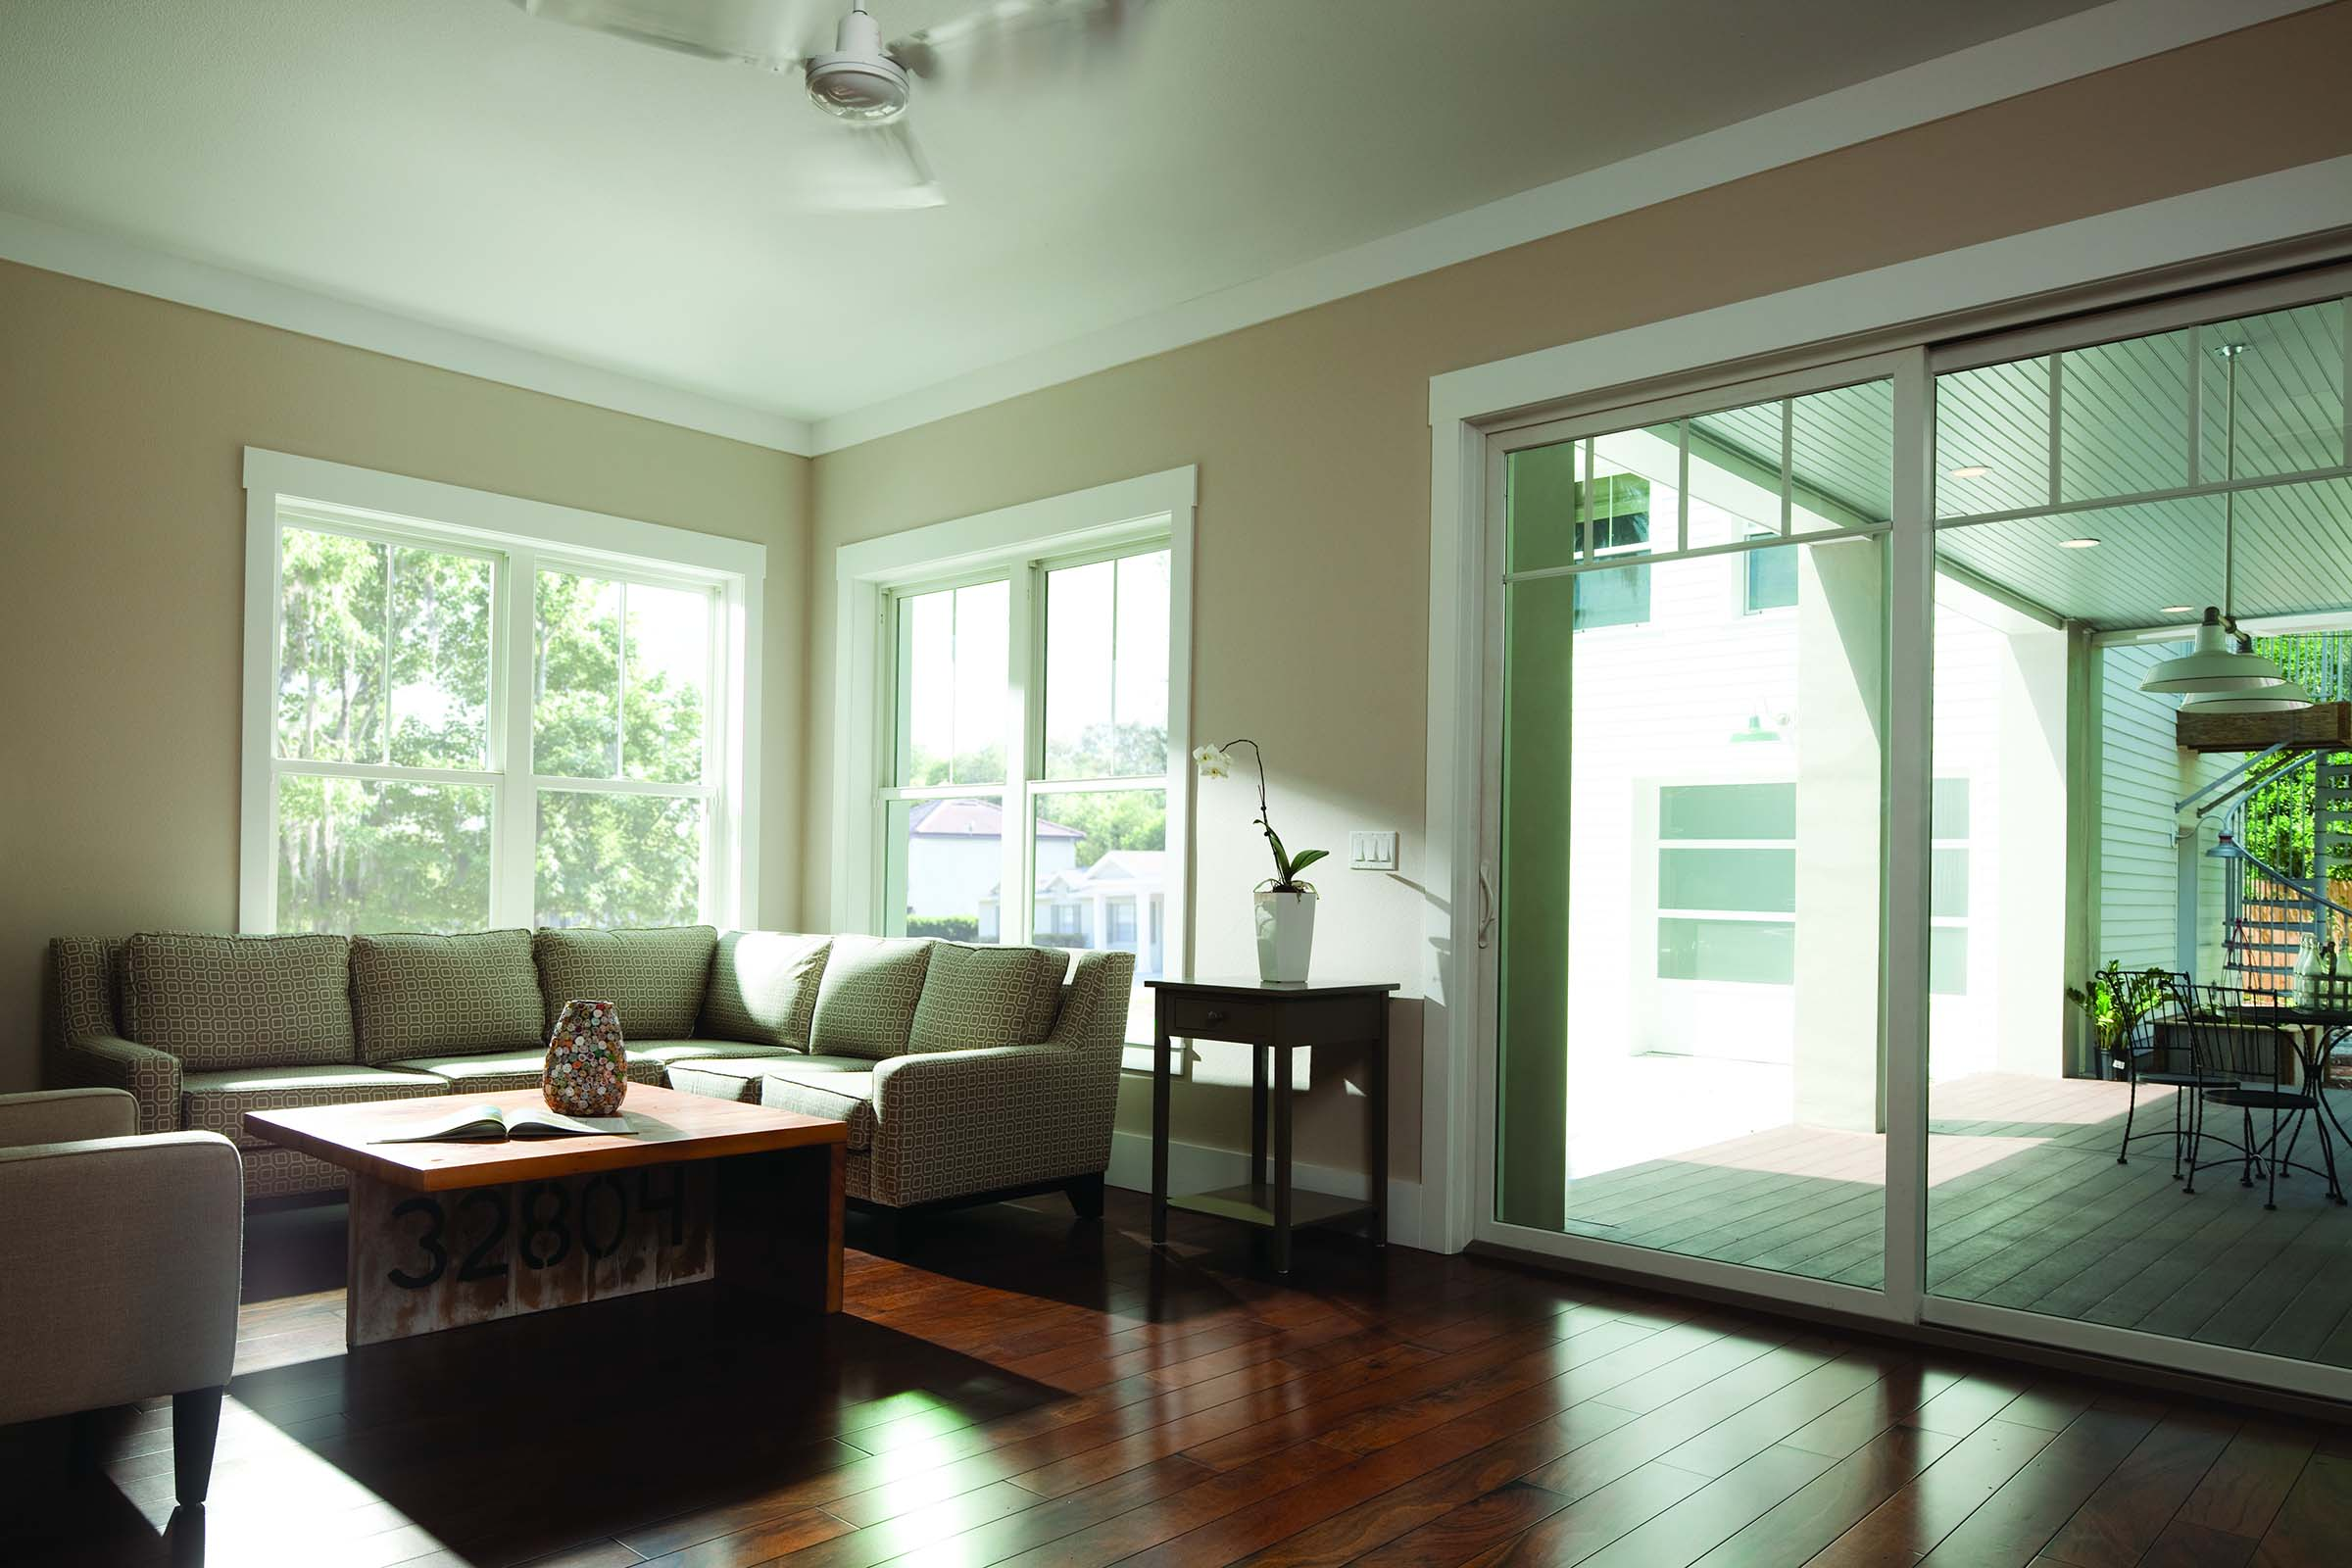 100 Series Gliding Patio Door-Single Hung Window